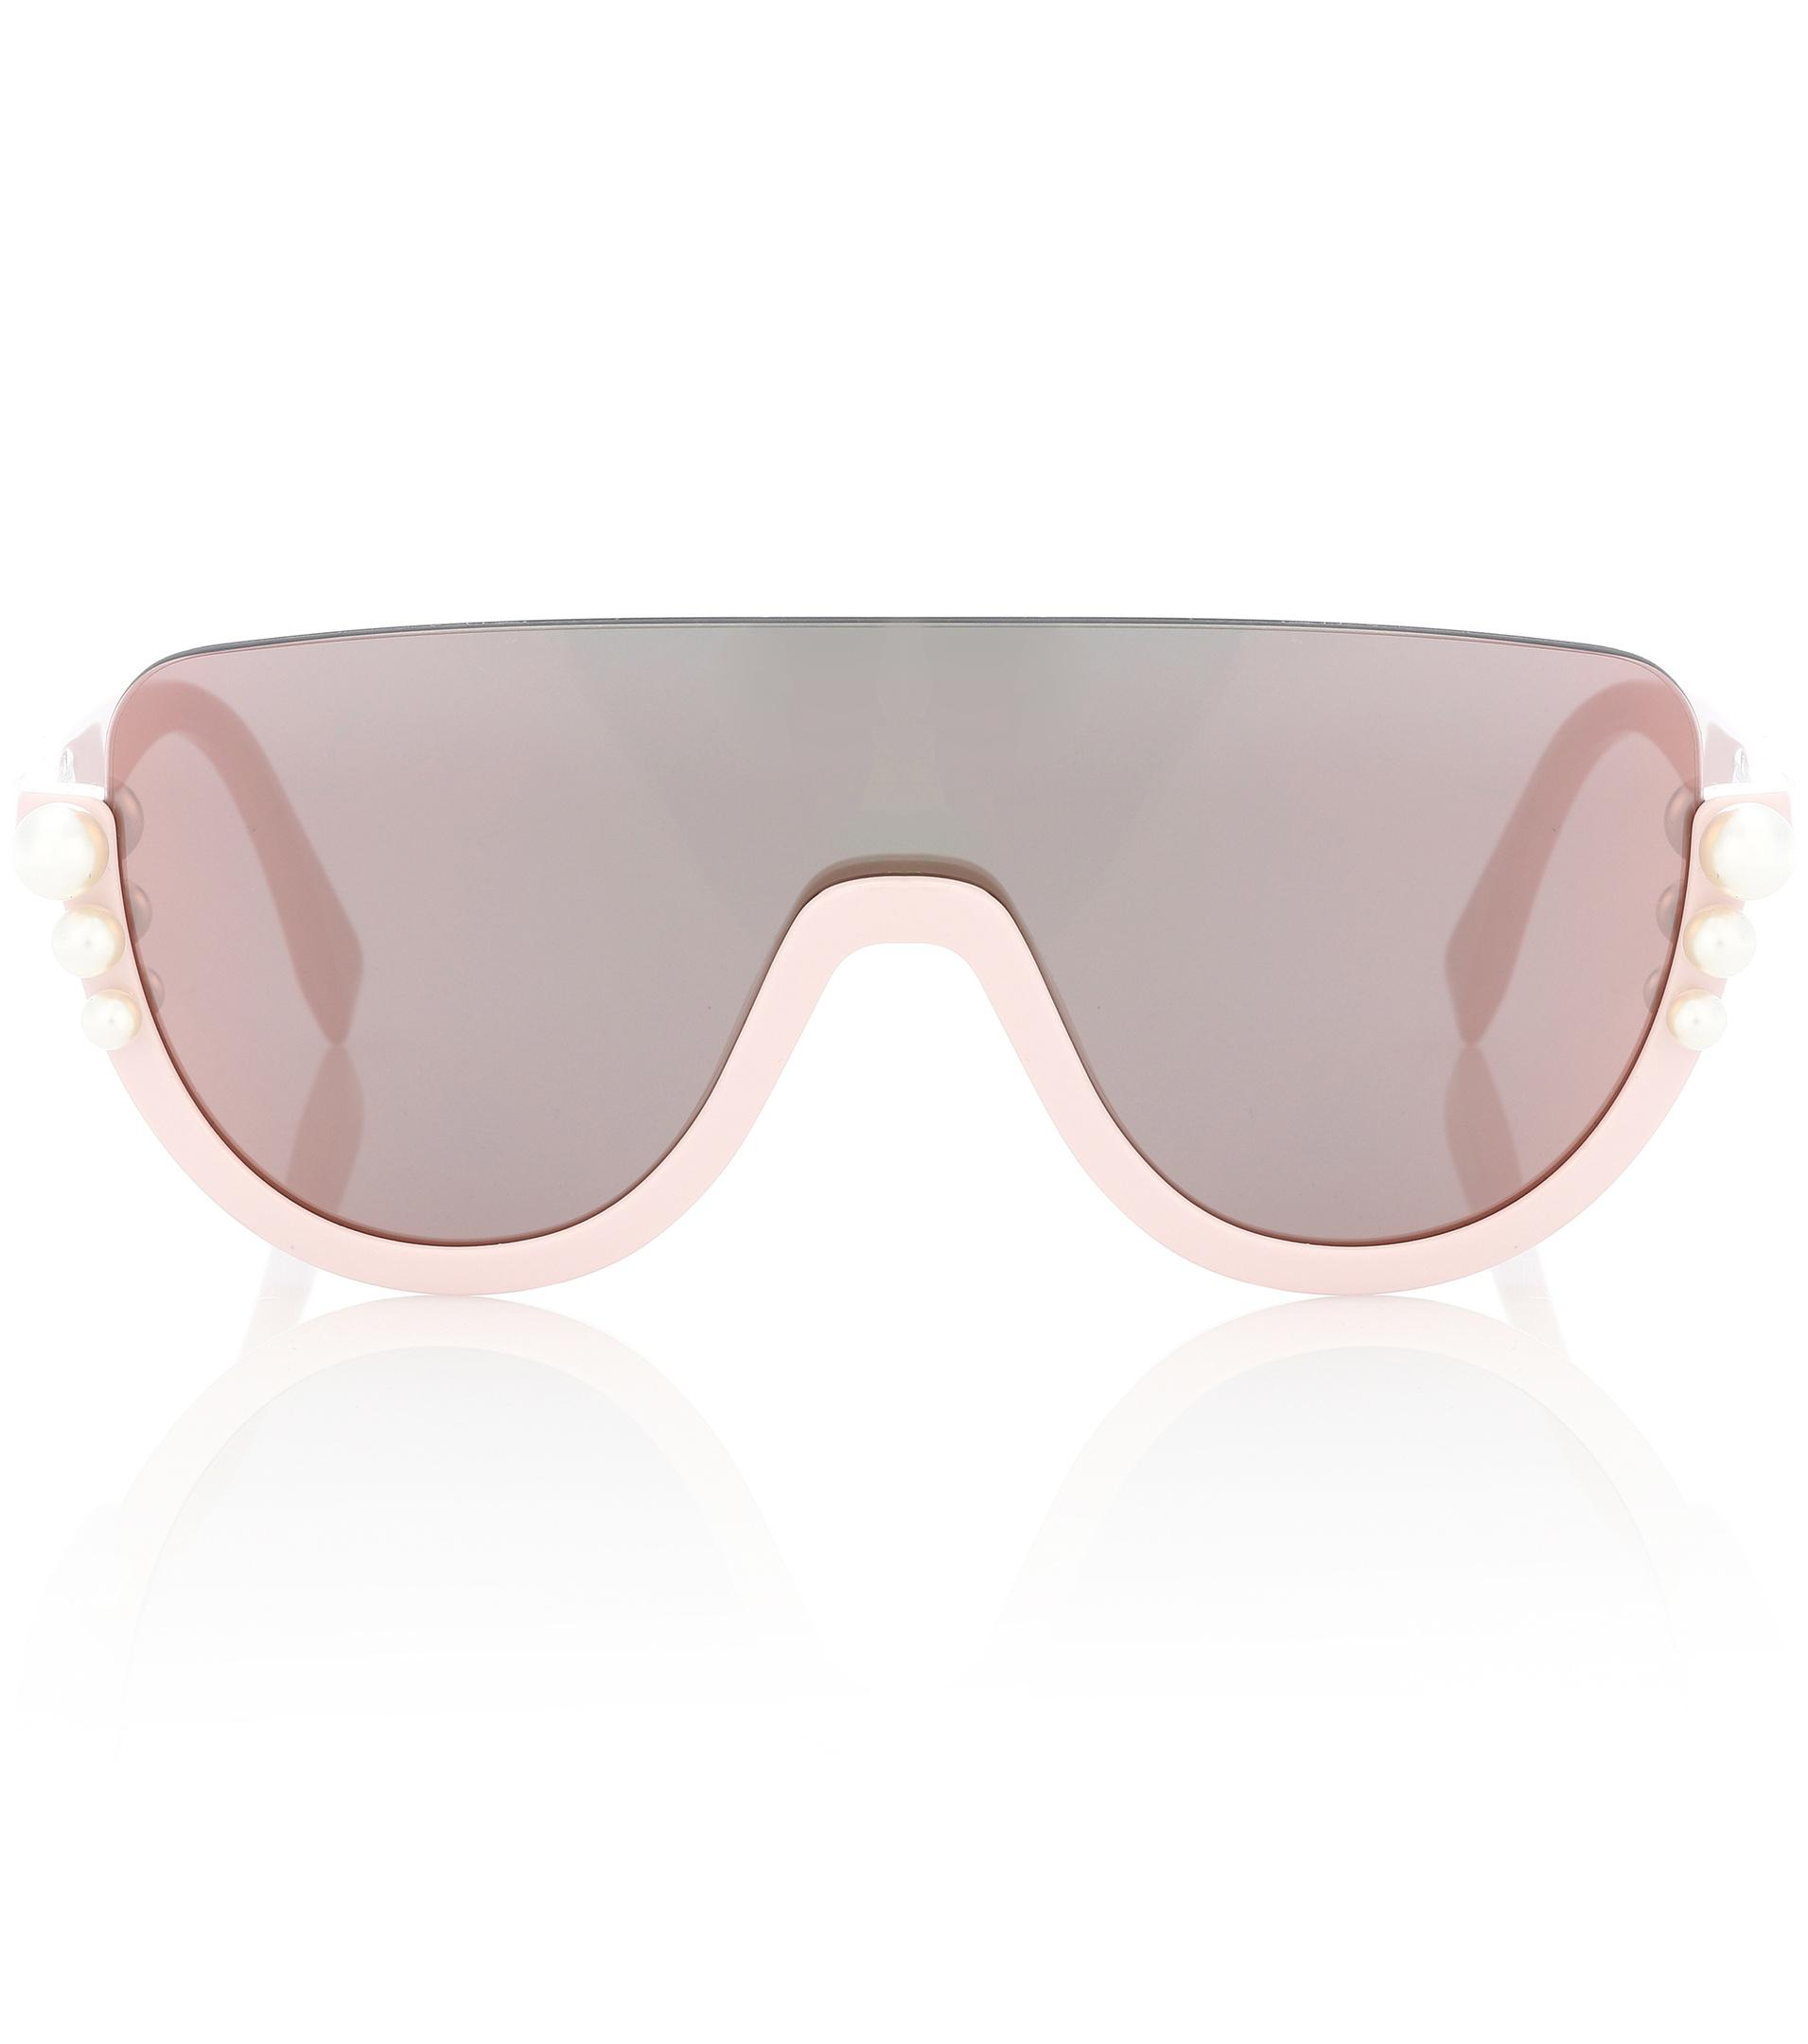 16e2045160e43 Fendi Ribbons And Pearls Sunglasses in Pink - Lyst